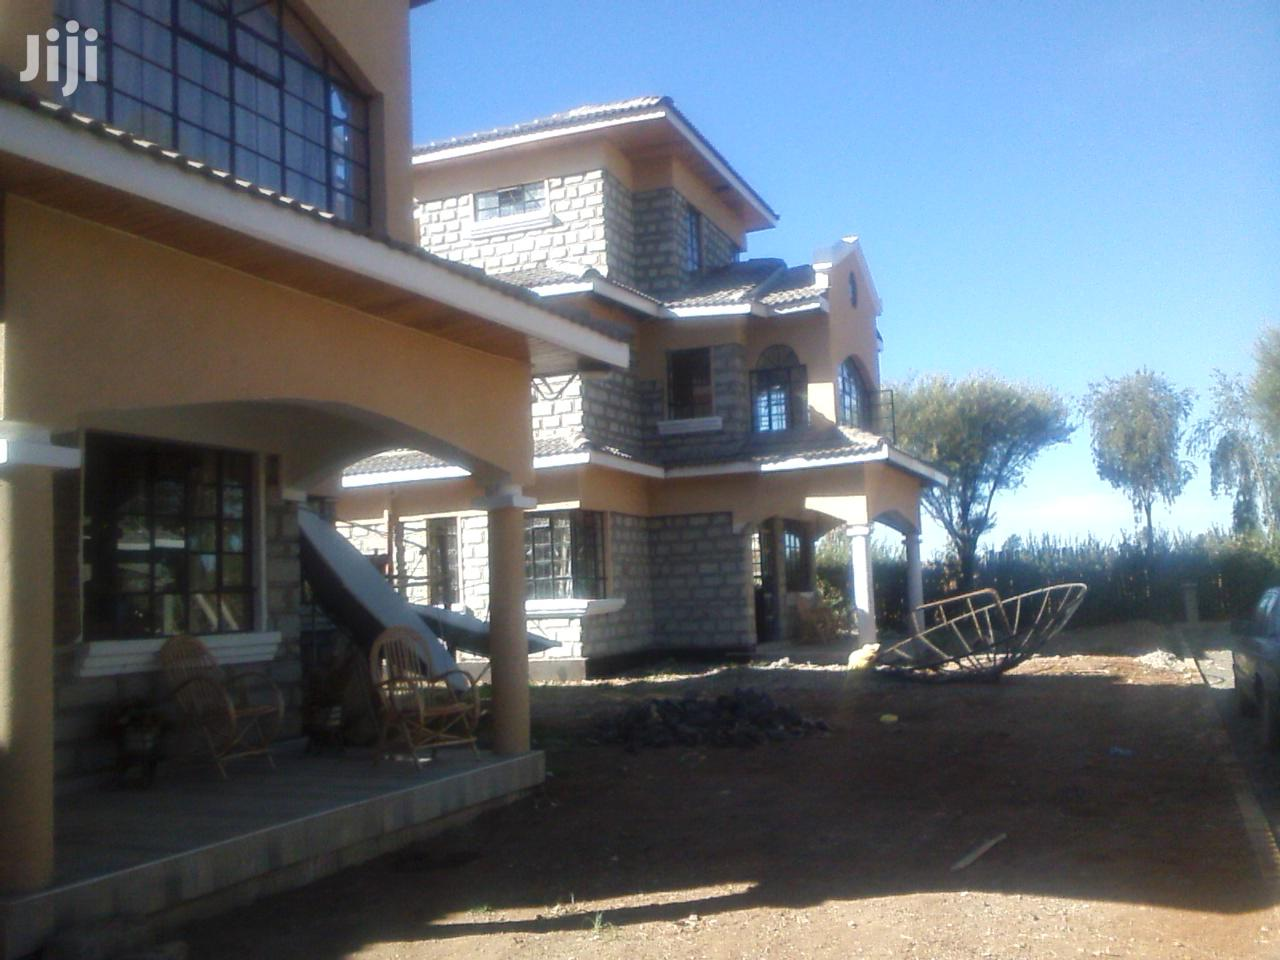 TOWN Villas 5 Bedroomed All En-Suite in a Secure Environs of ELGON V